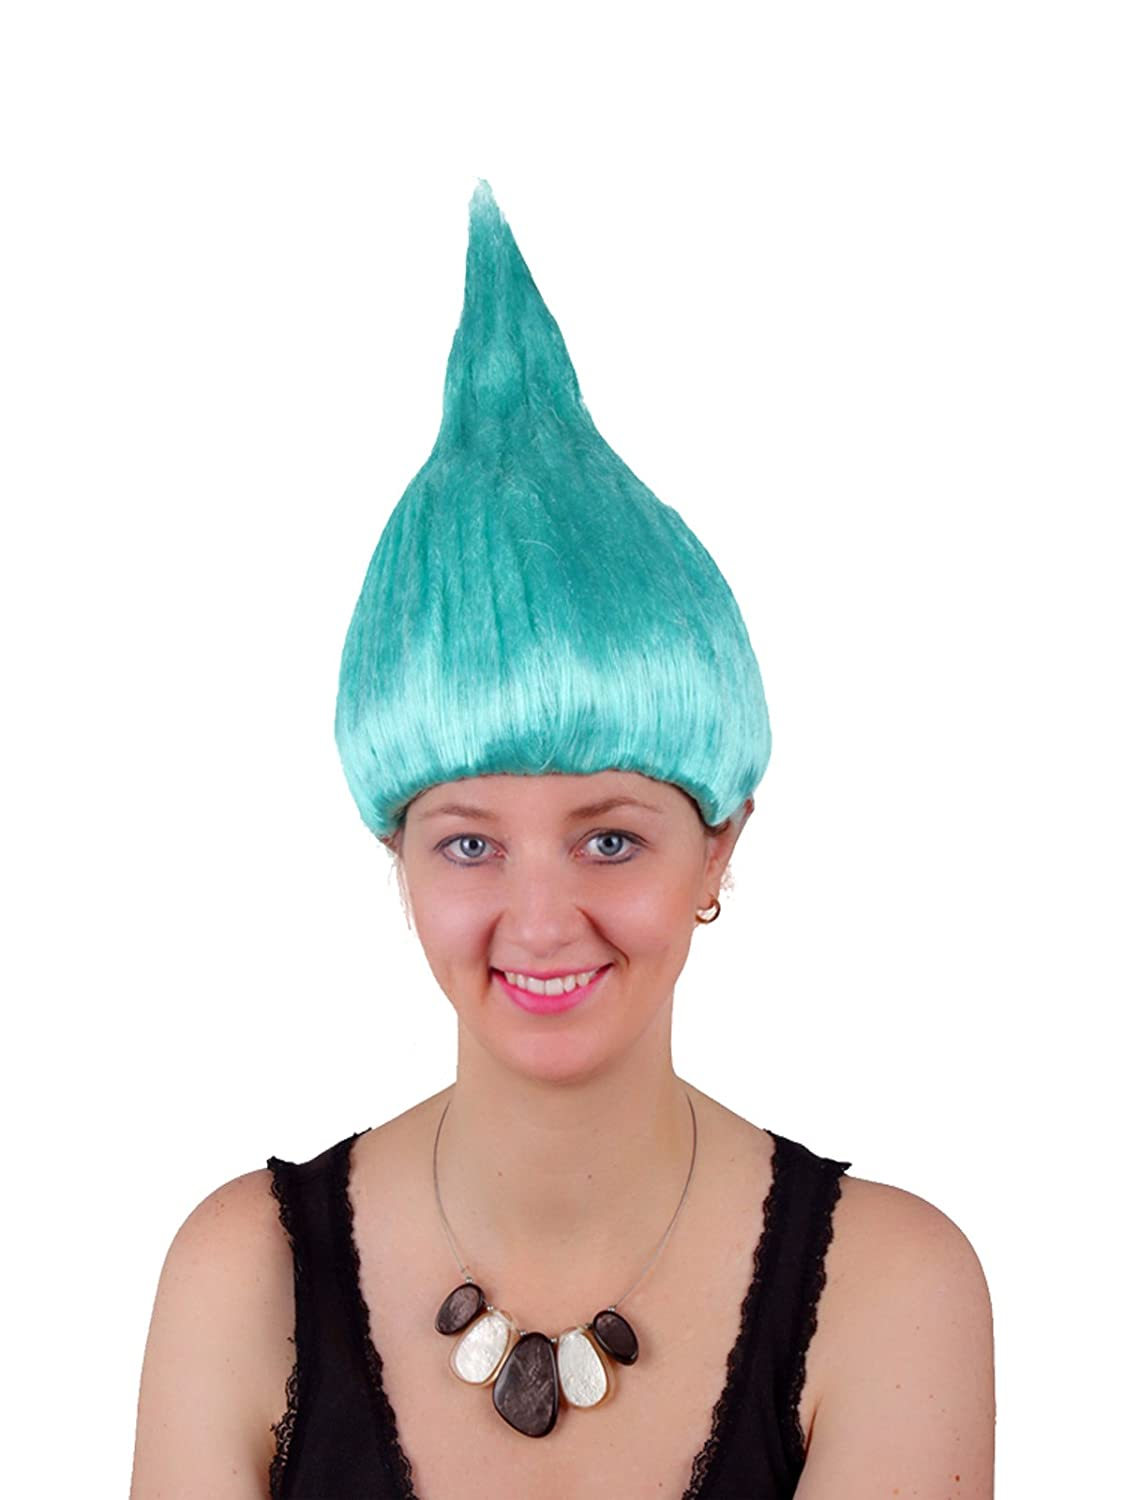 Poppy Trolls Wig Synthetic Hair Party Halloween Costume Cosplay Wig Women